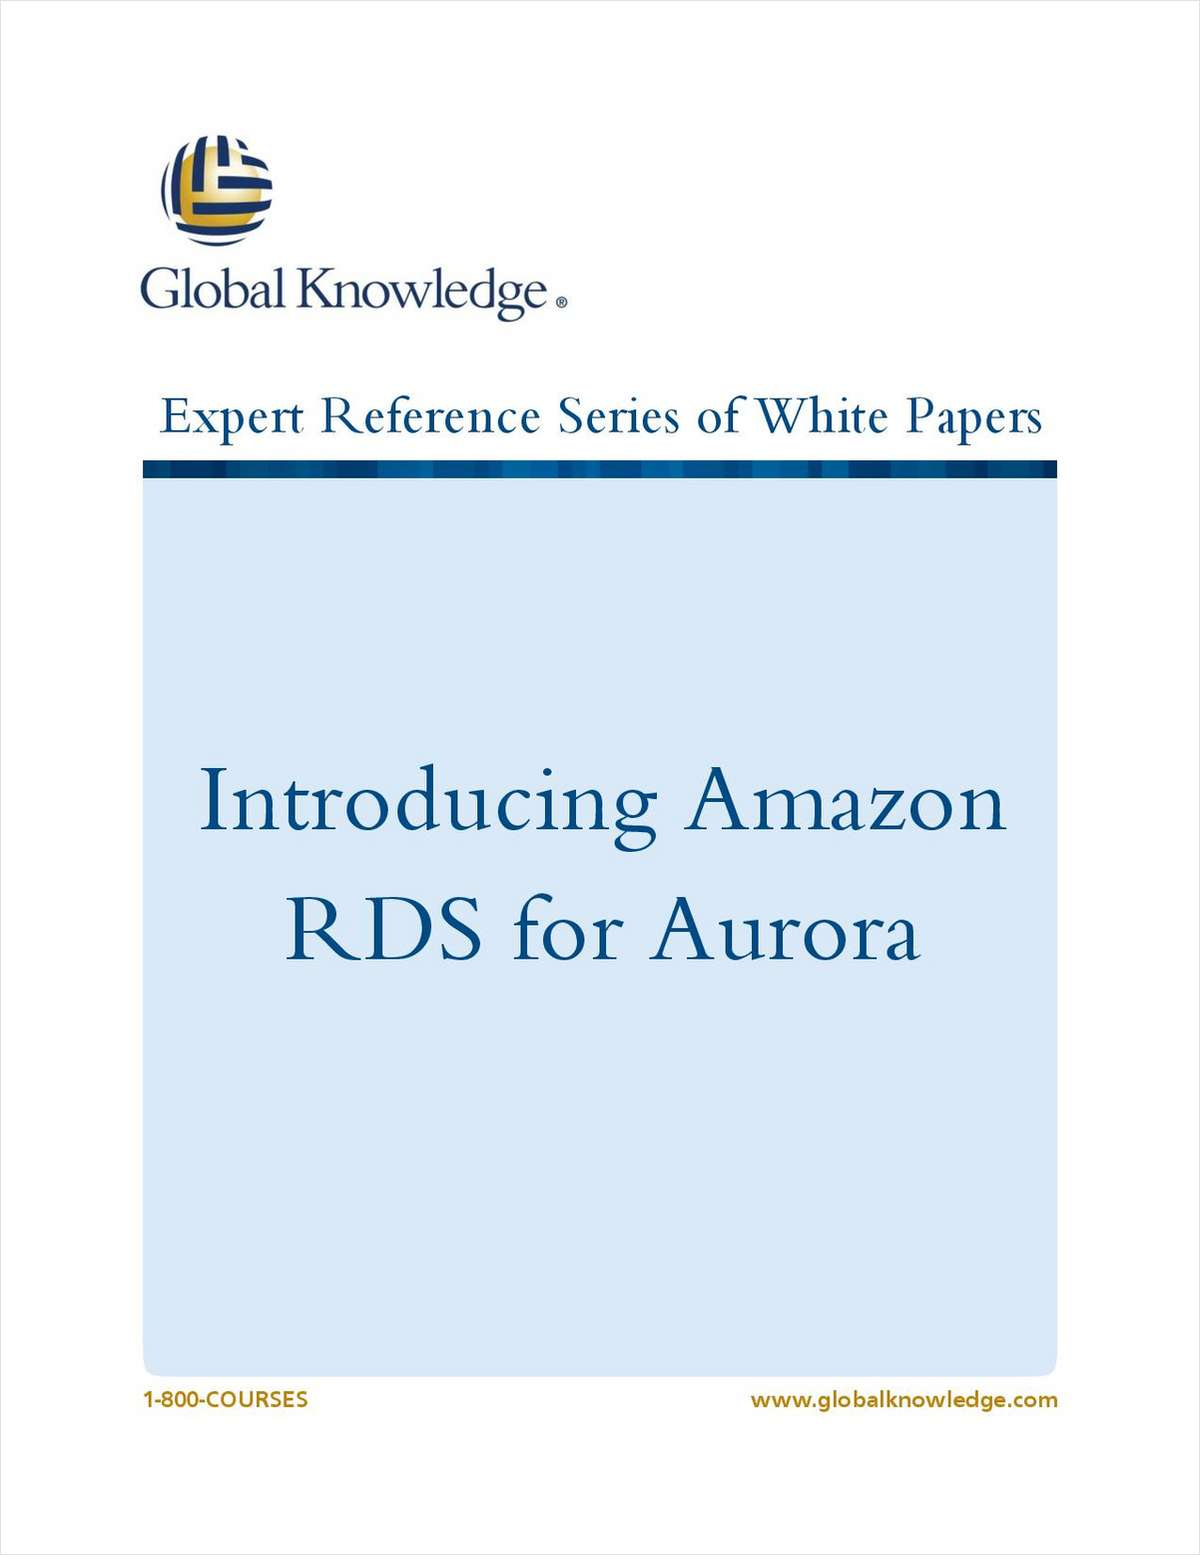 Introducing Amazon RDS for Aurora